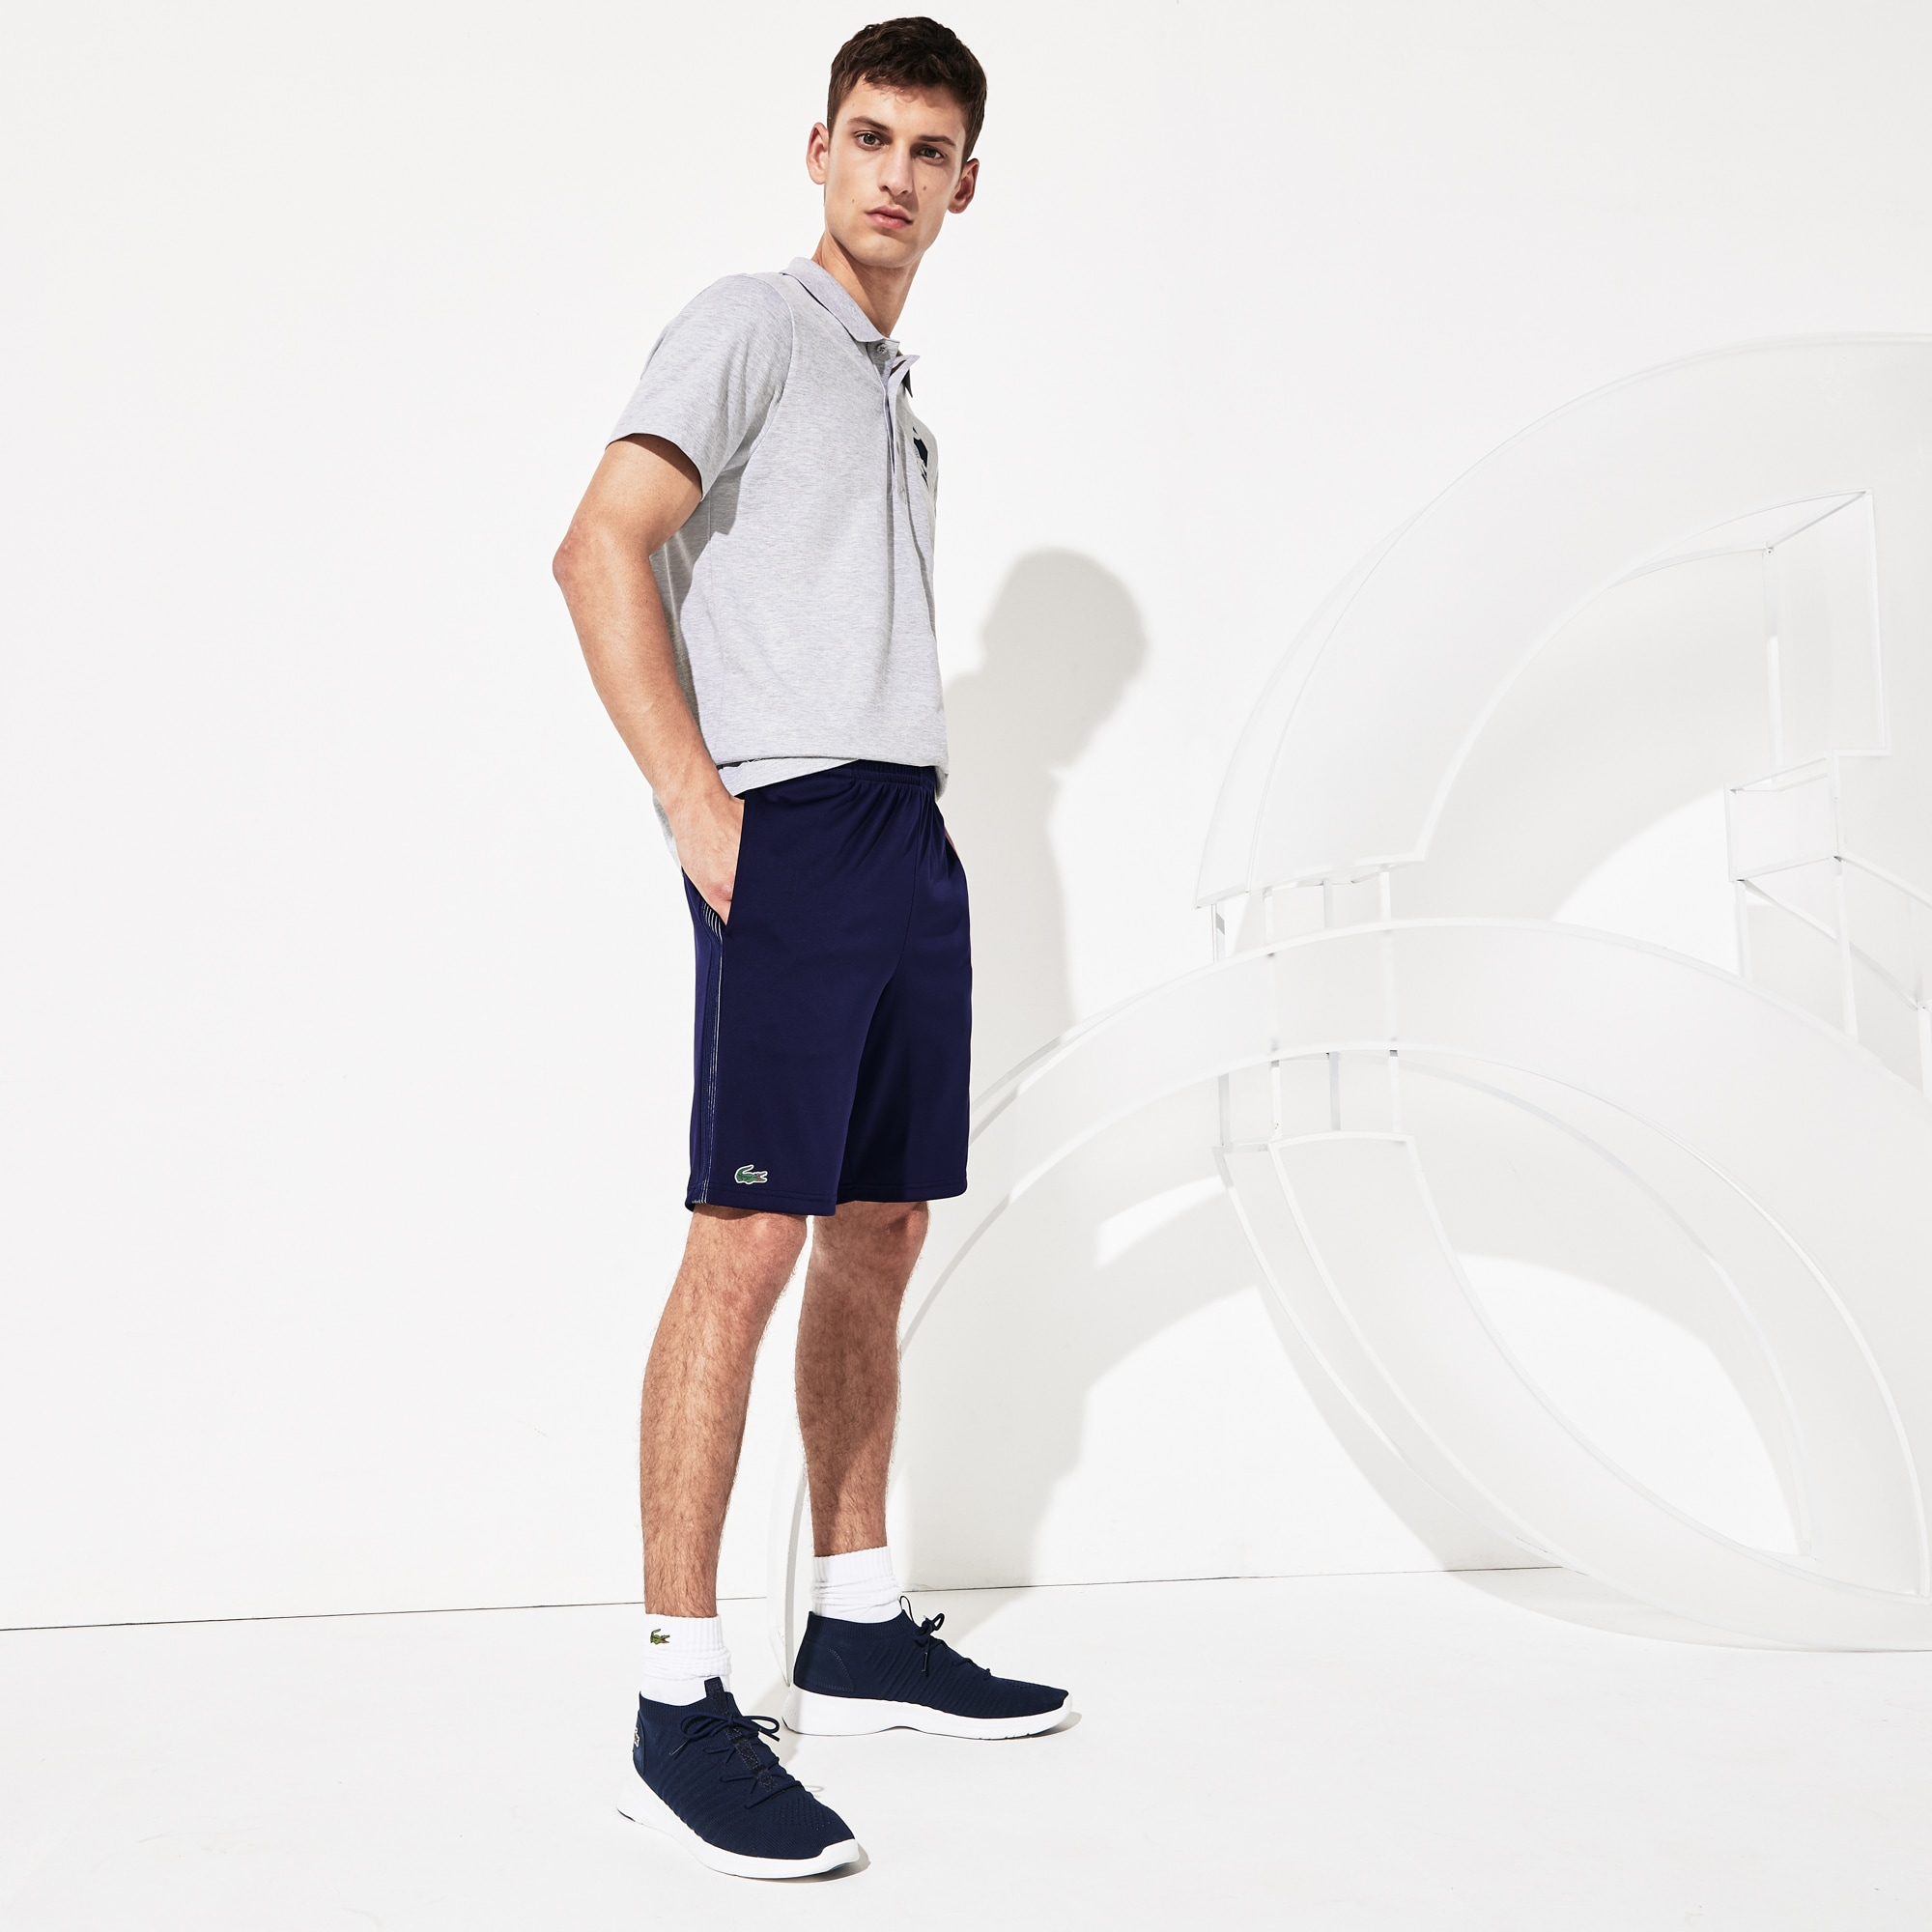 Men's Lacoste SPORT Novak Djokovic Support With Style - Off Court Collection Technical Piqué Shorts